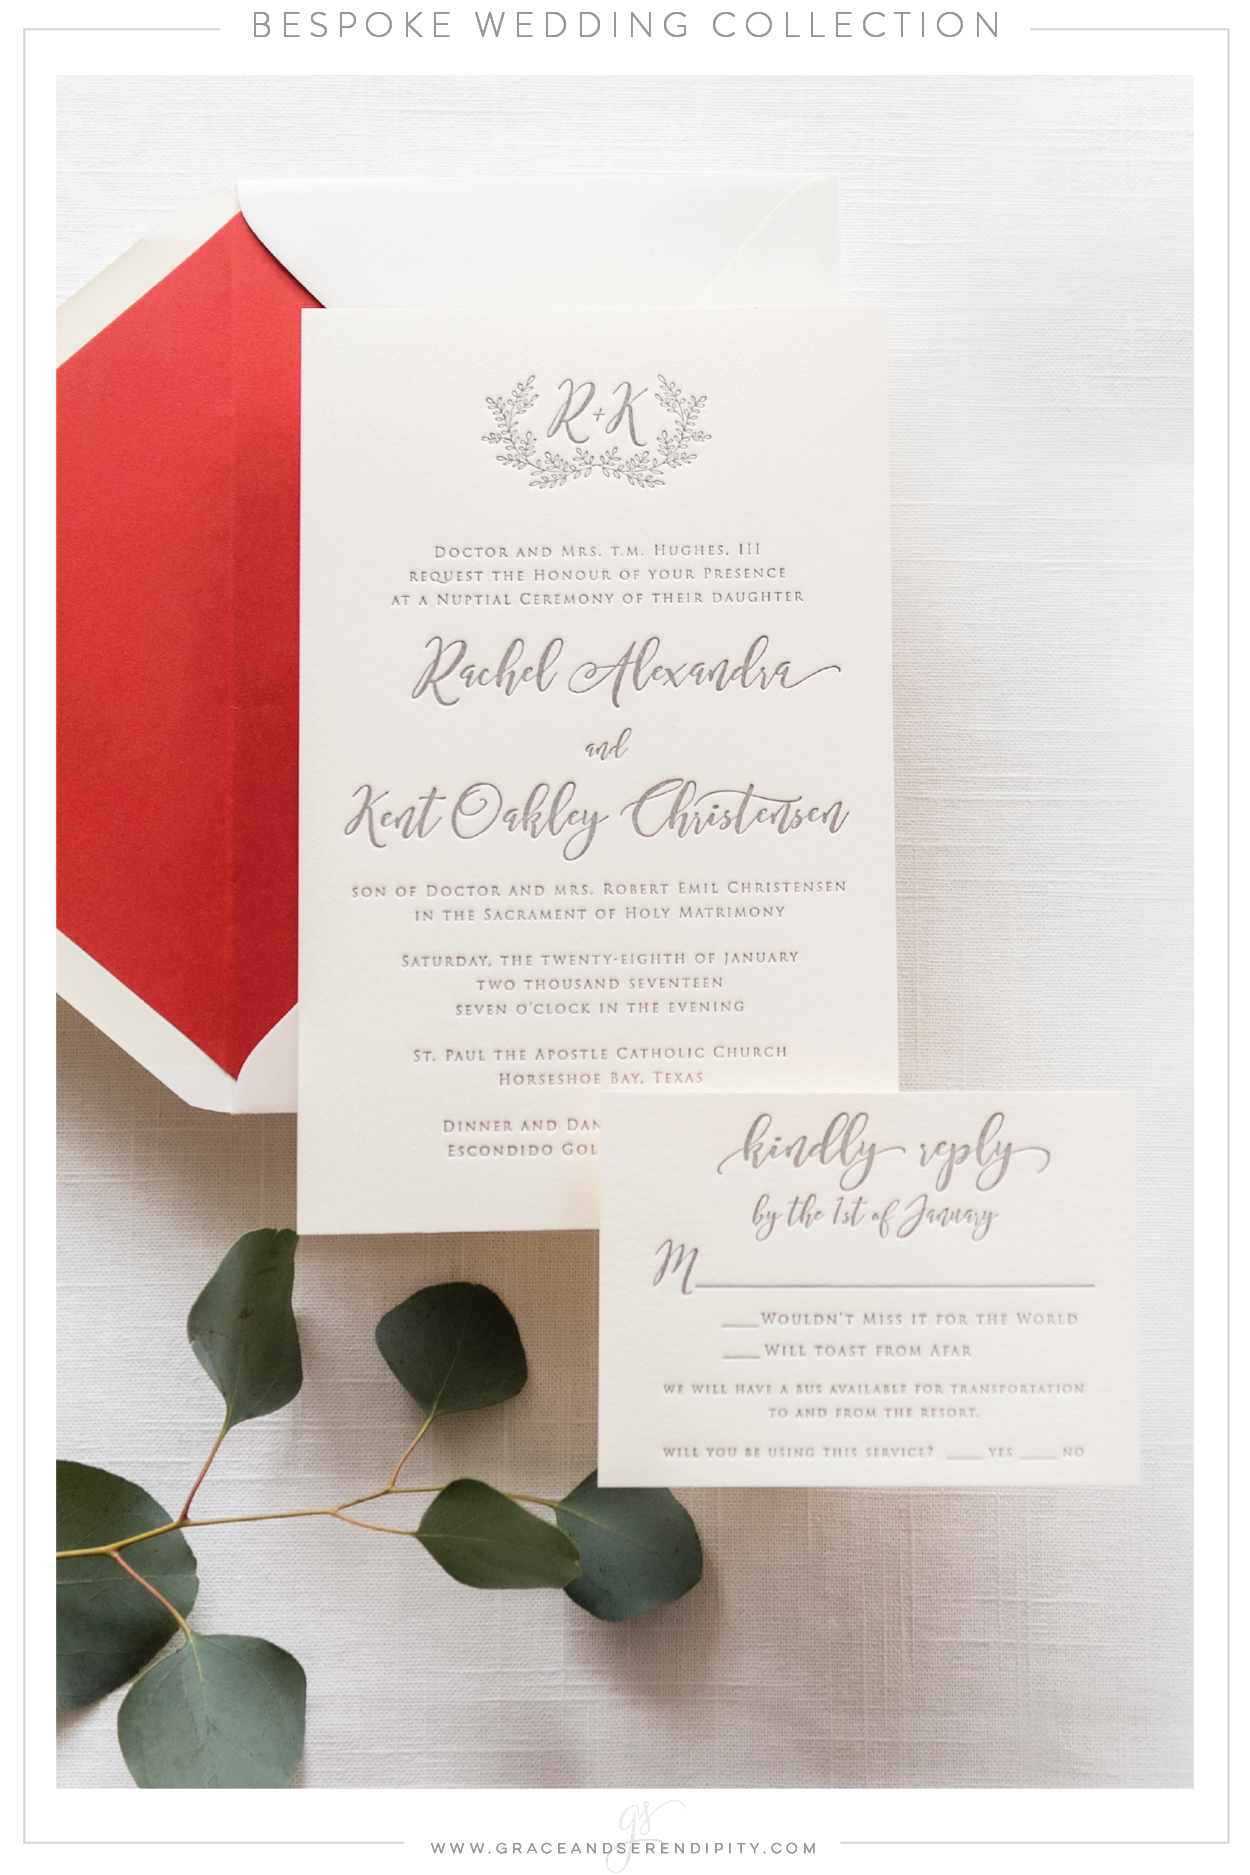 Custom Letterpress Wedding Invitation by Grace and Serendipity, photography by Aislinn Kate